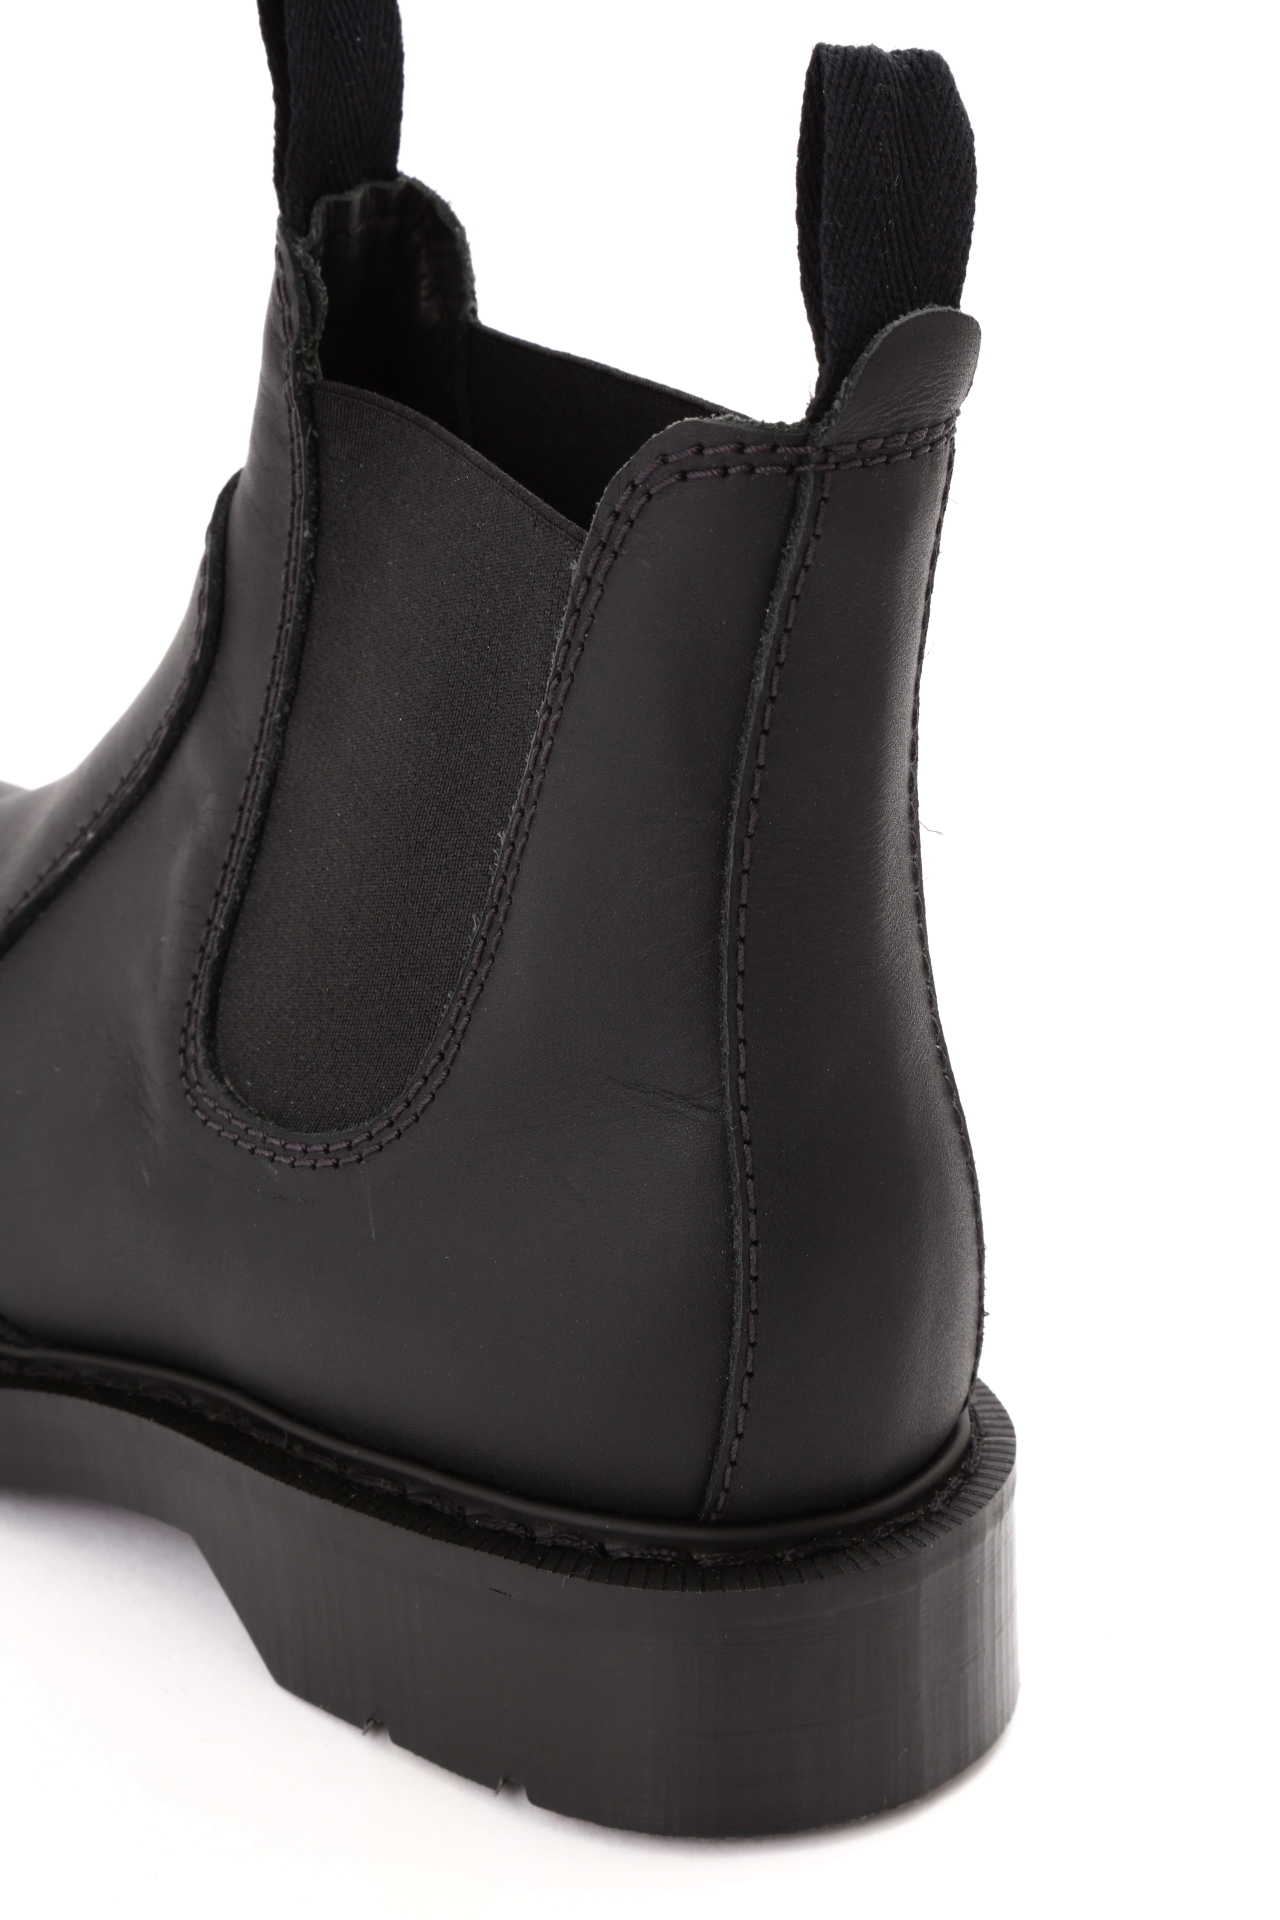 MHL CHELSEA BOOTS(MHL SHOP限定)5